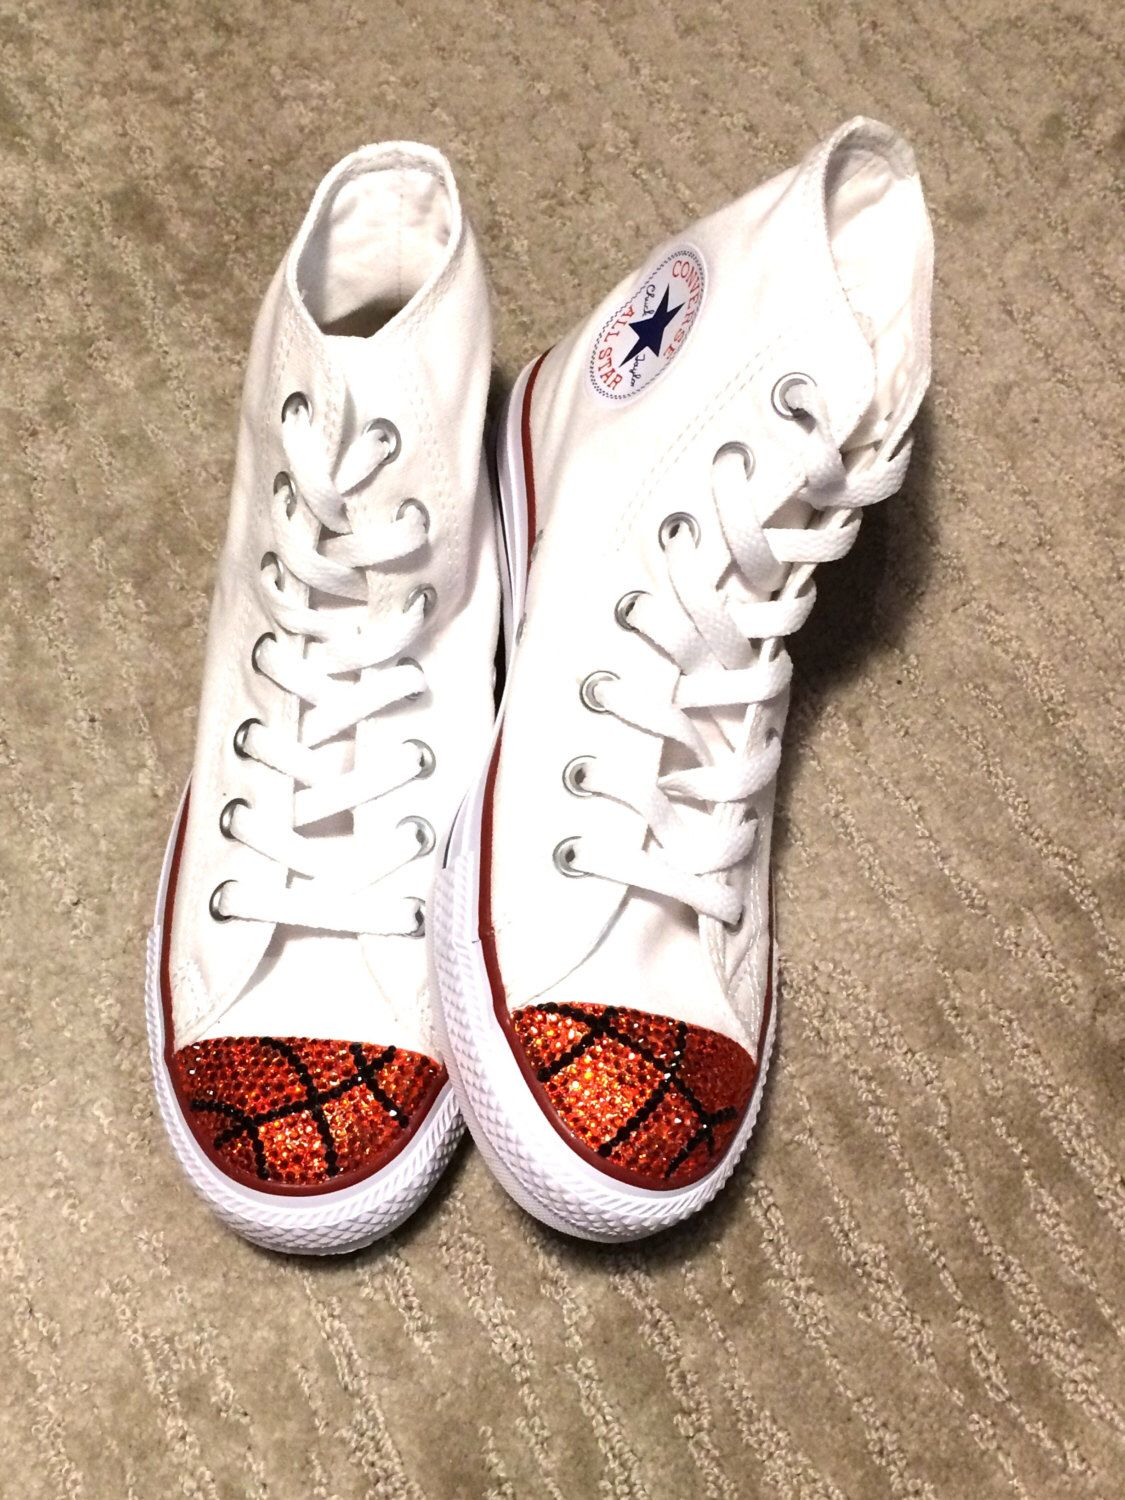 b94518b8265ea Basketball Bling Converse High Tops White. Custom Made Converse Women s  Shoes. Basketball Players